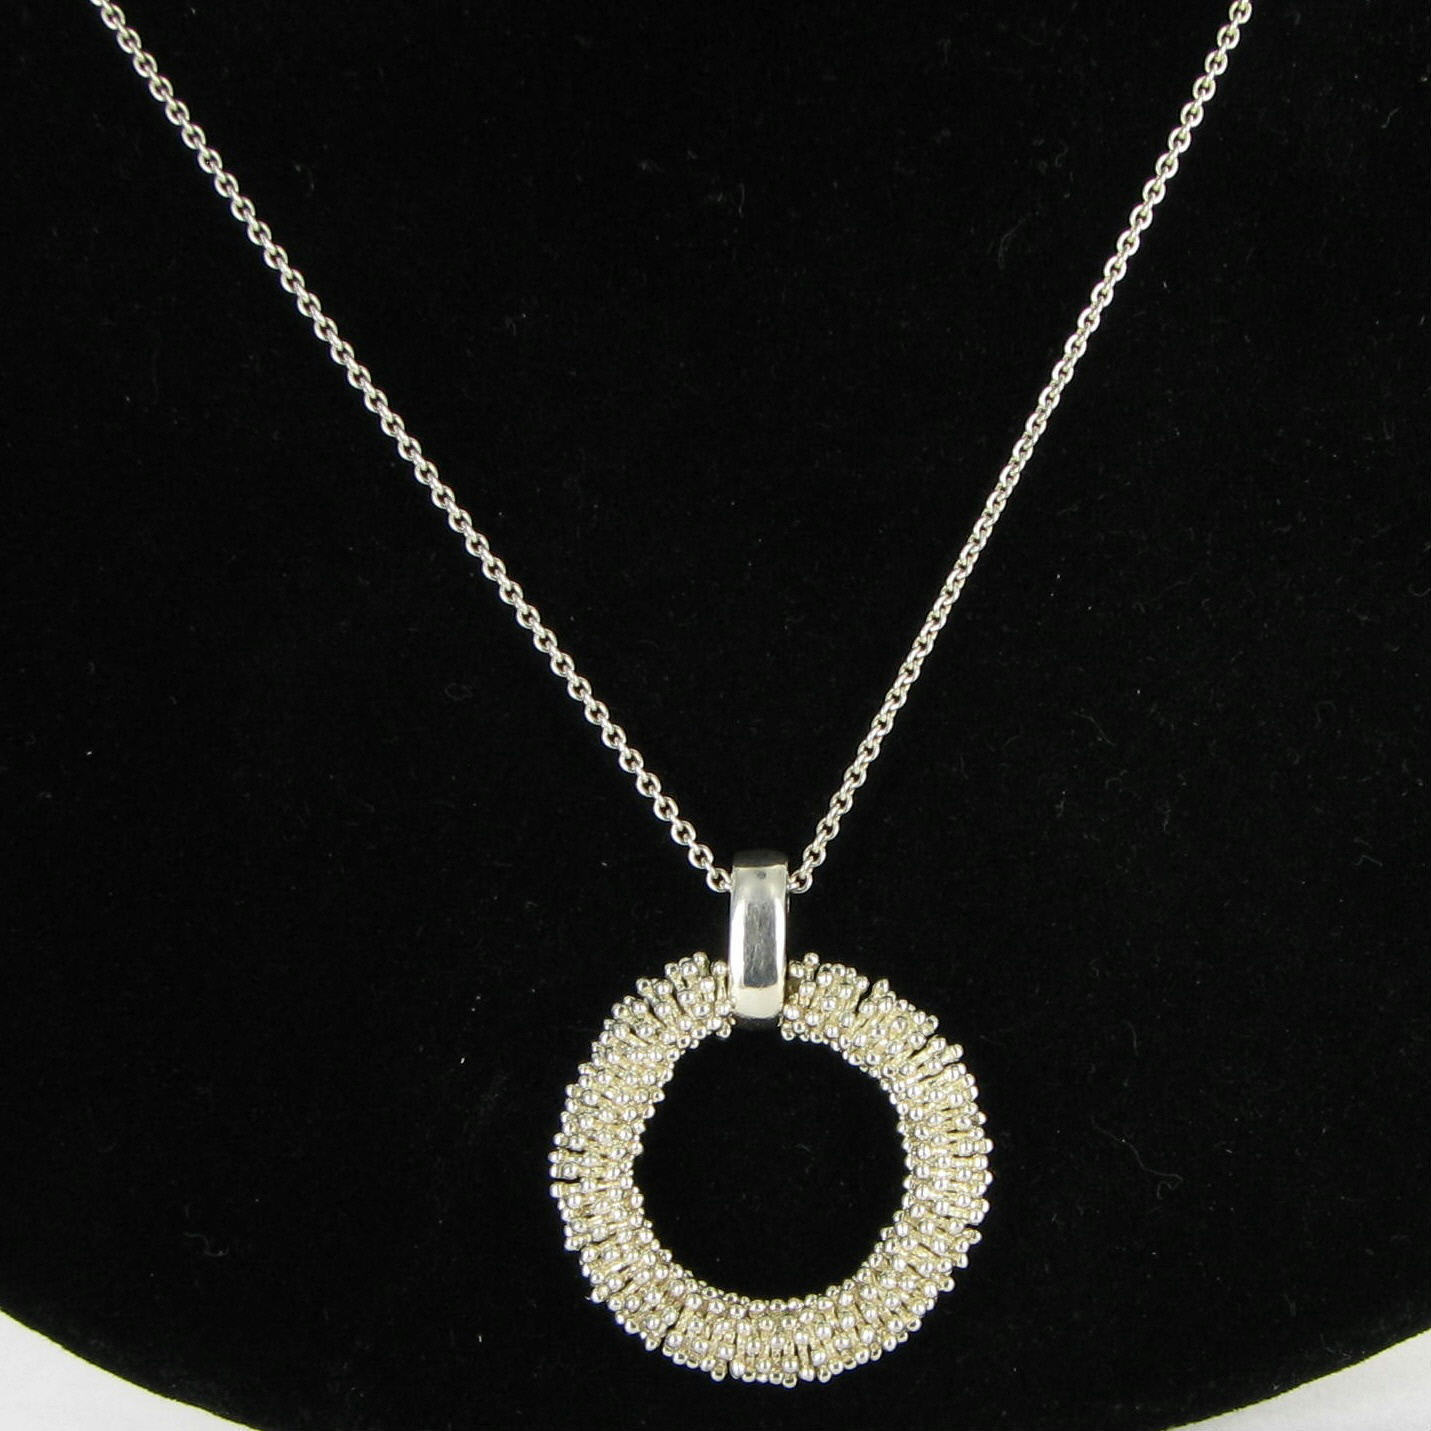 Links of London Effervescence Star One Necklace 5224.0151 49cm Sterling New $275